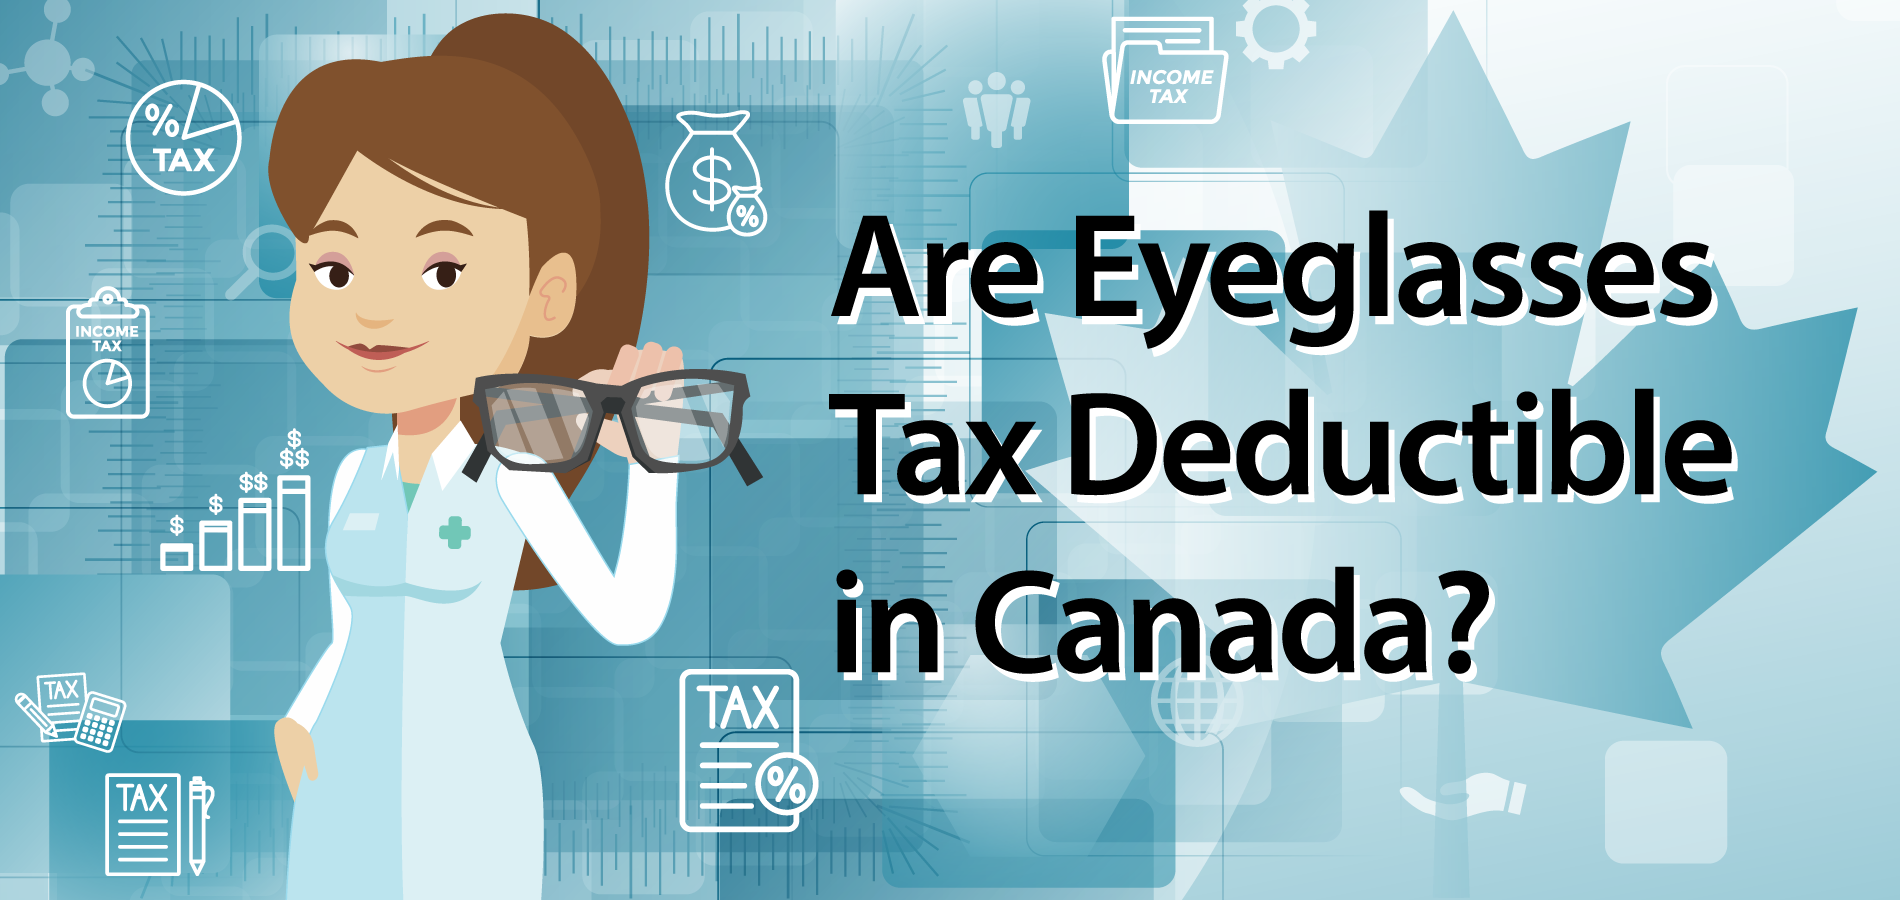 Are Eyeglasses Tax Deductible in Canada